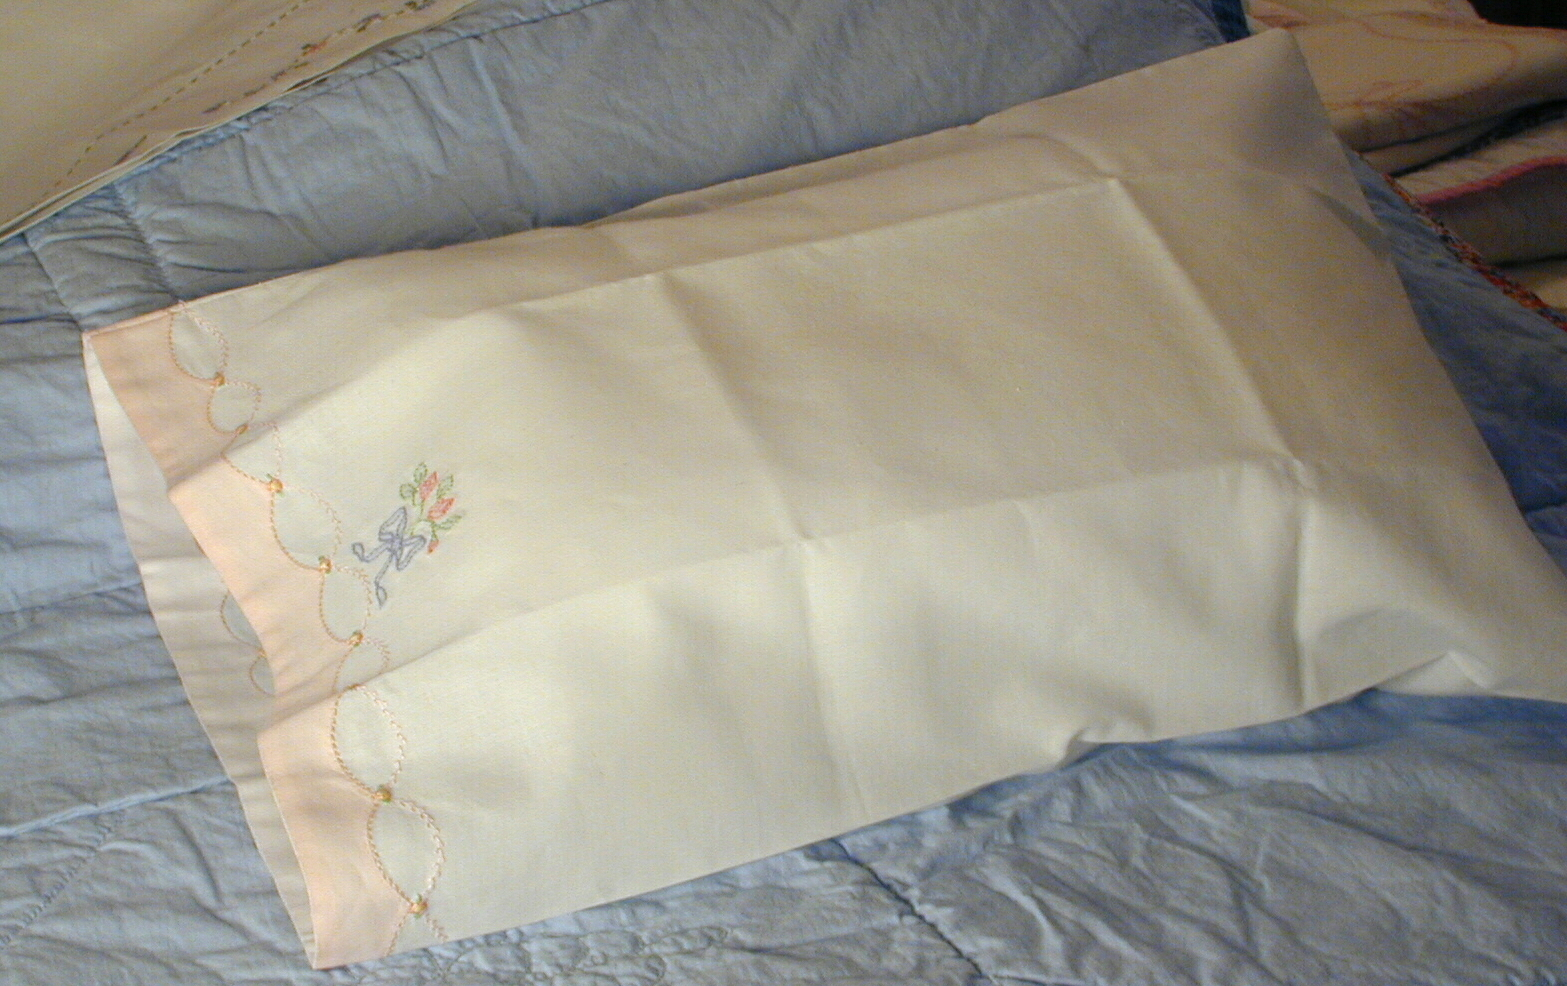 embroidery, featherstitching and Madeira applique hem, it looks